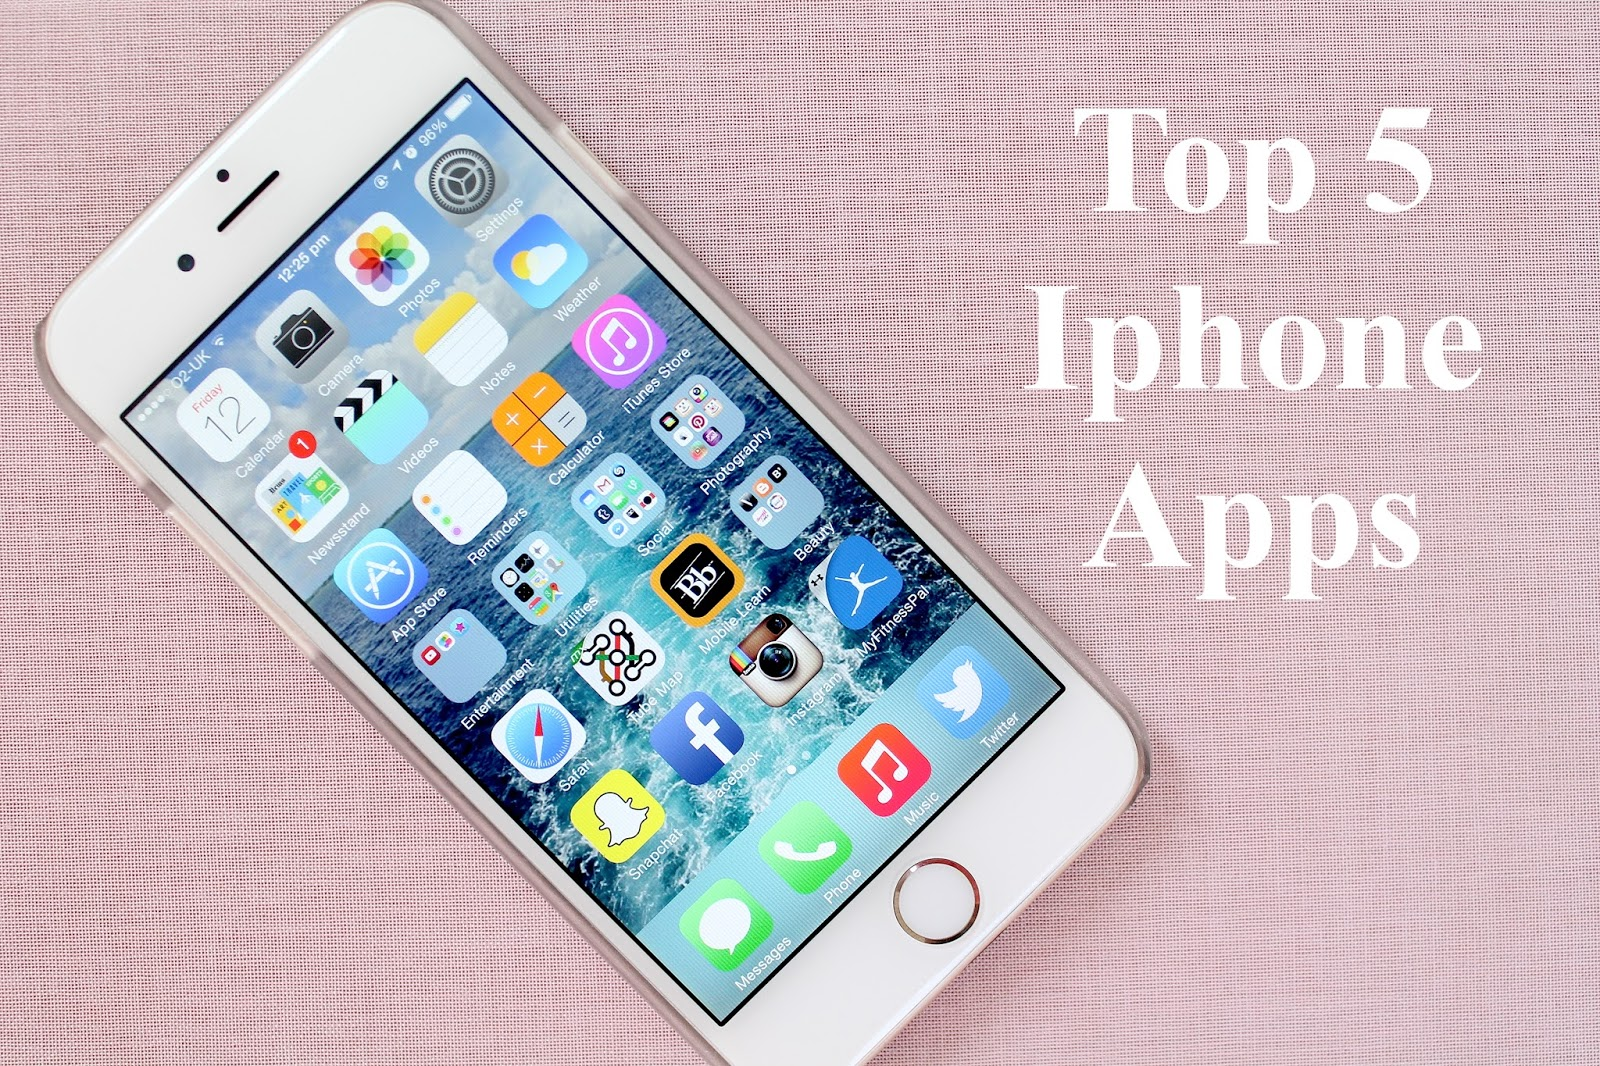 best apps for iphone top iphone apps iphone apps expensive app top 5 apps 1688